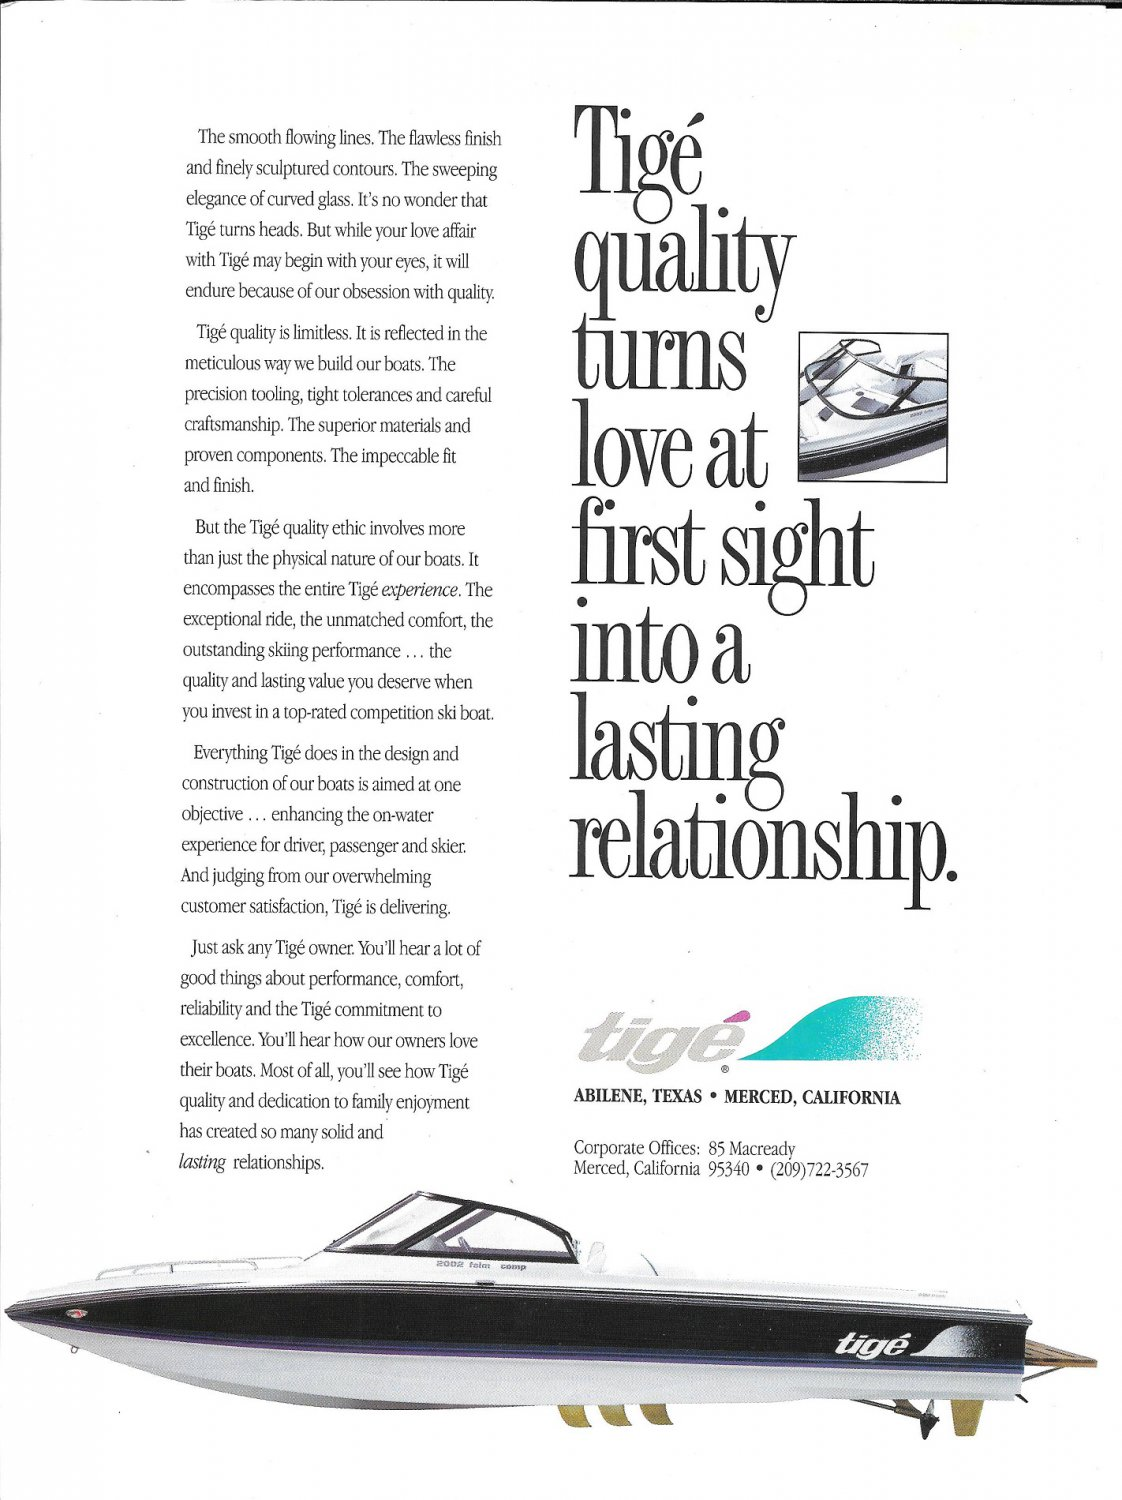 1995 Tige Boat Color Ad- Nice Photo